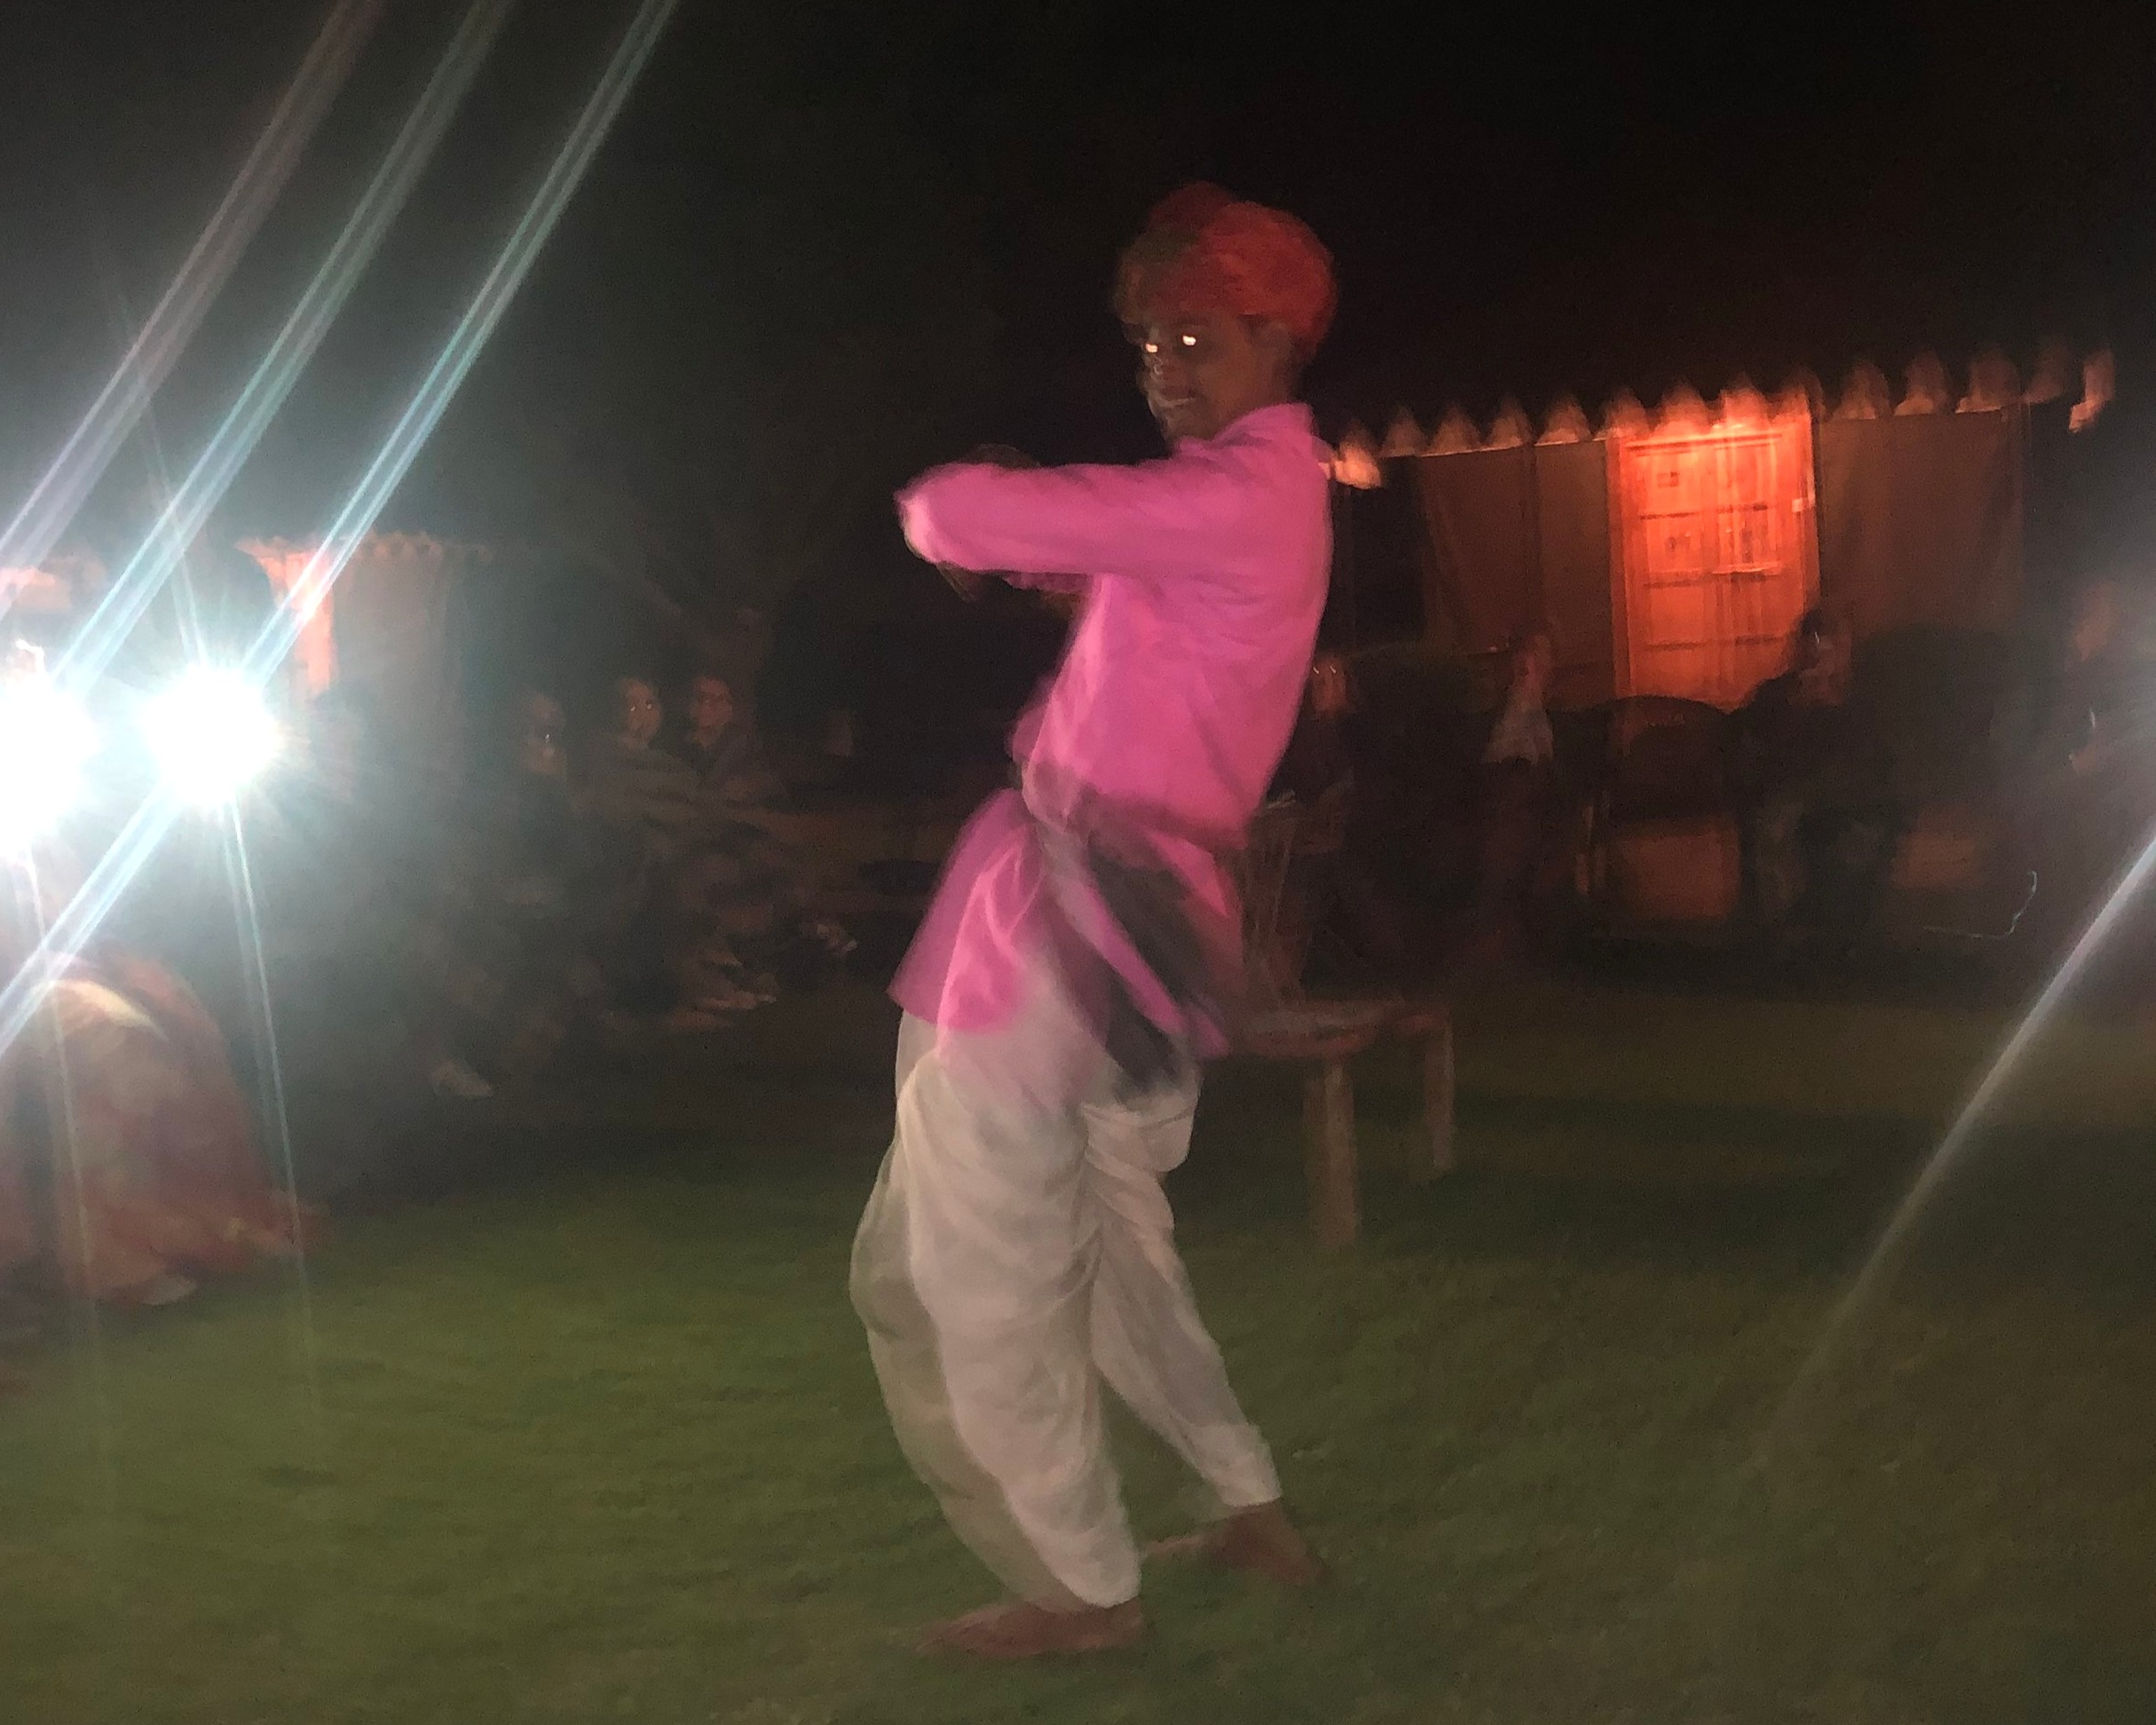 He looks a bit demonic in this low-quality photo. Alas, the dancing man's hilarity simply could not be captured on camera.